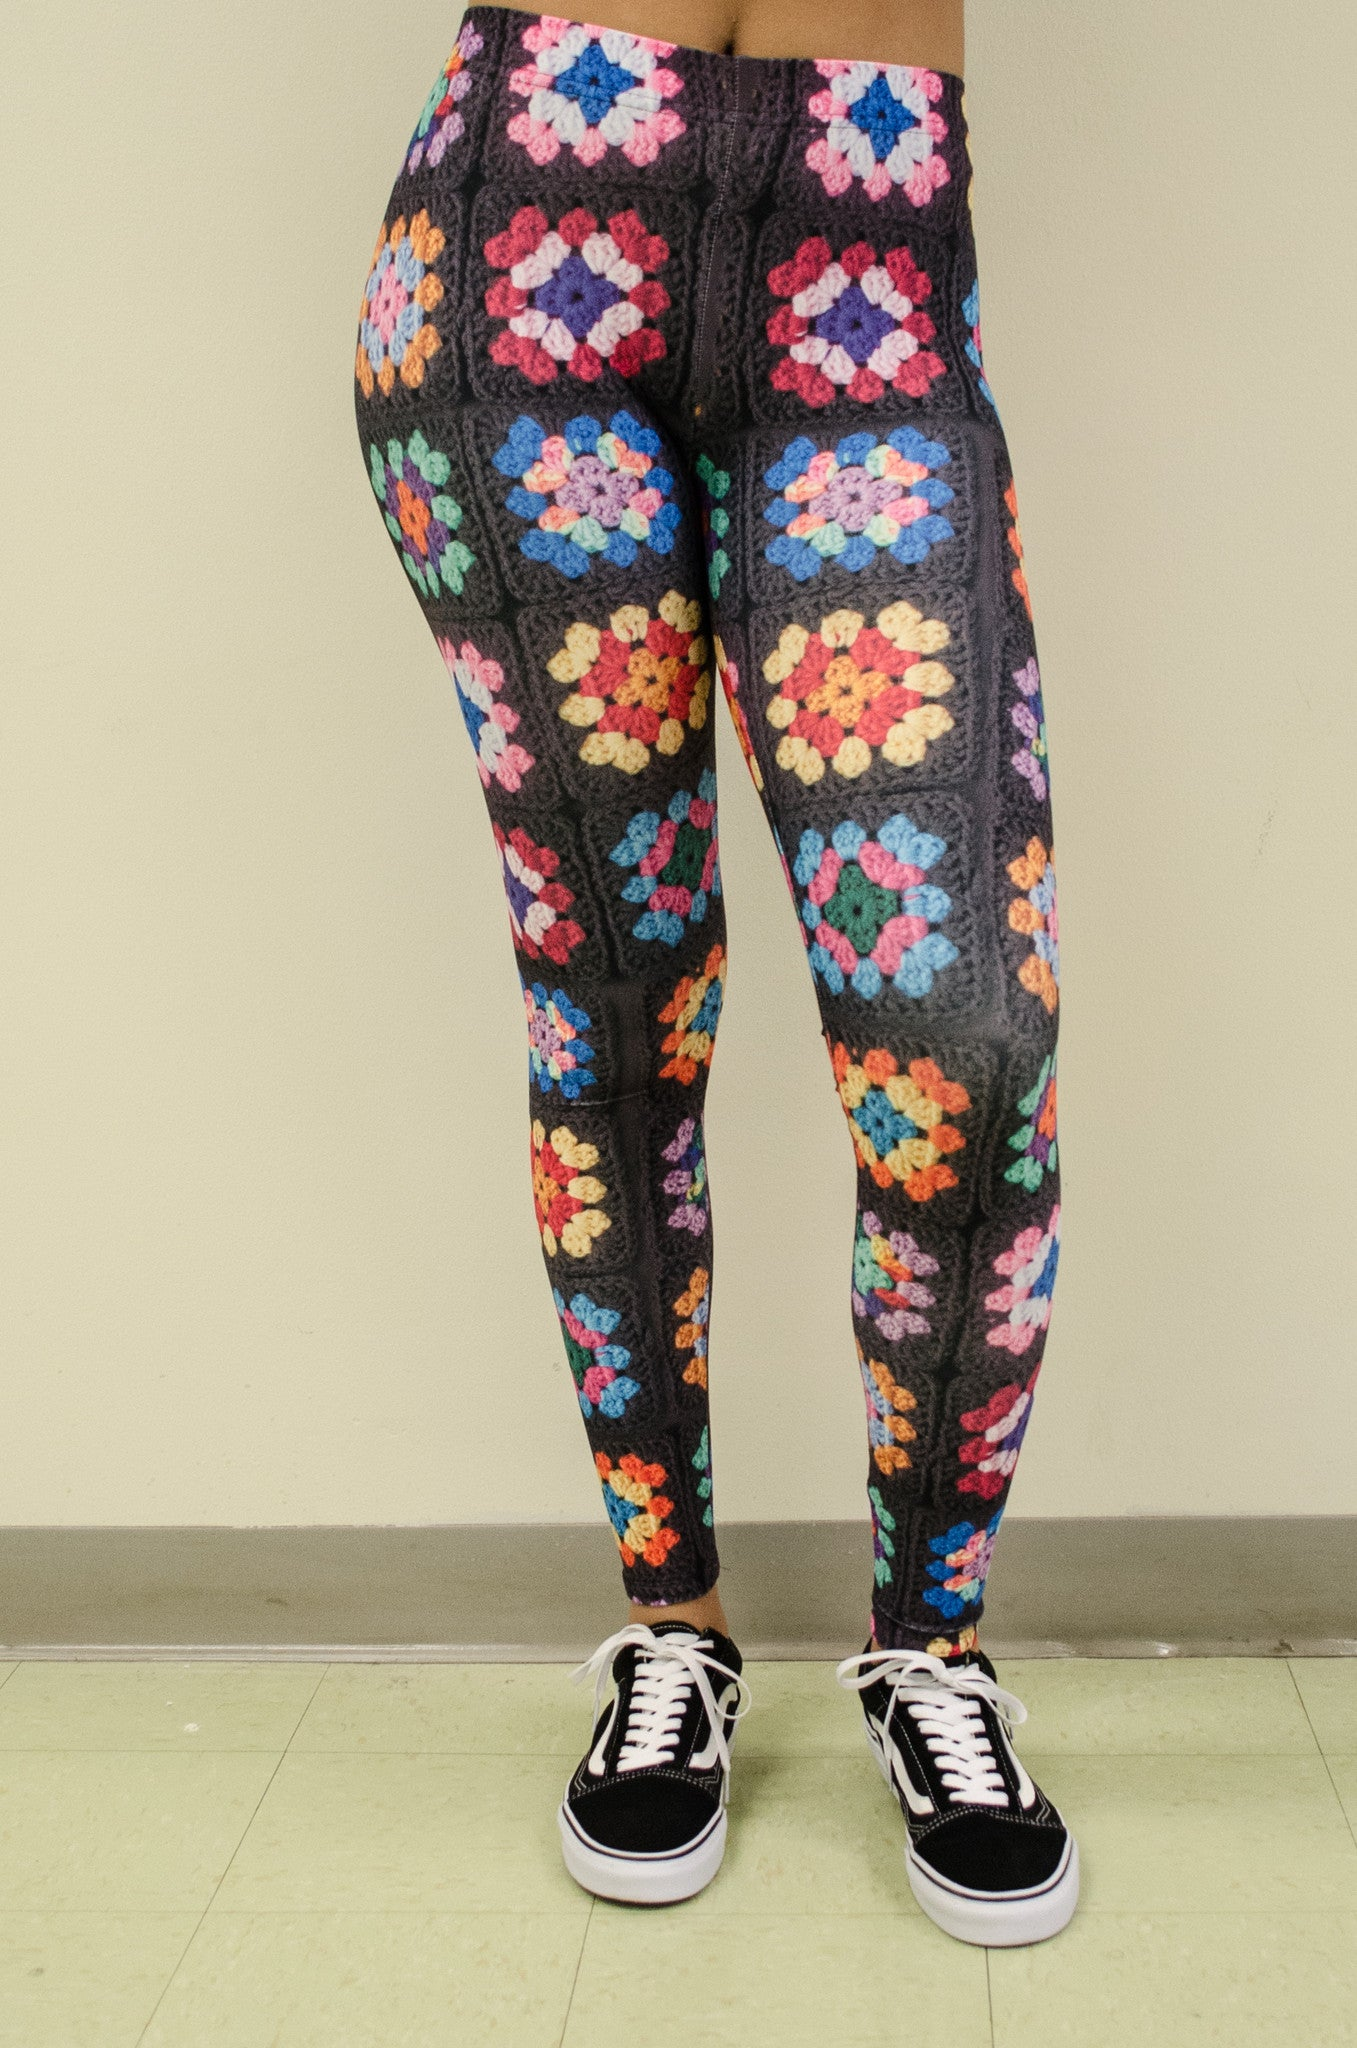 Snapdragon Brand Clothing Granny Square Crochet Print black leggings in style Kaleidoscope features a 1960s vintage boho feel and a rainbow of colors. Made of comfortable spandex.